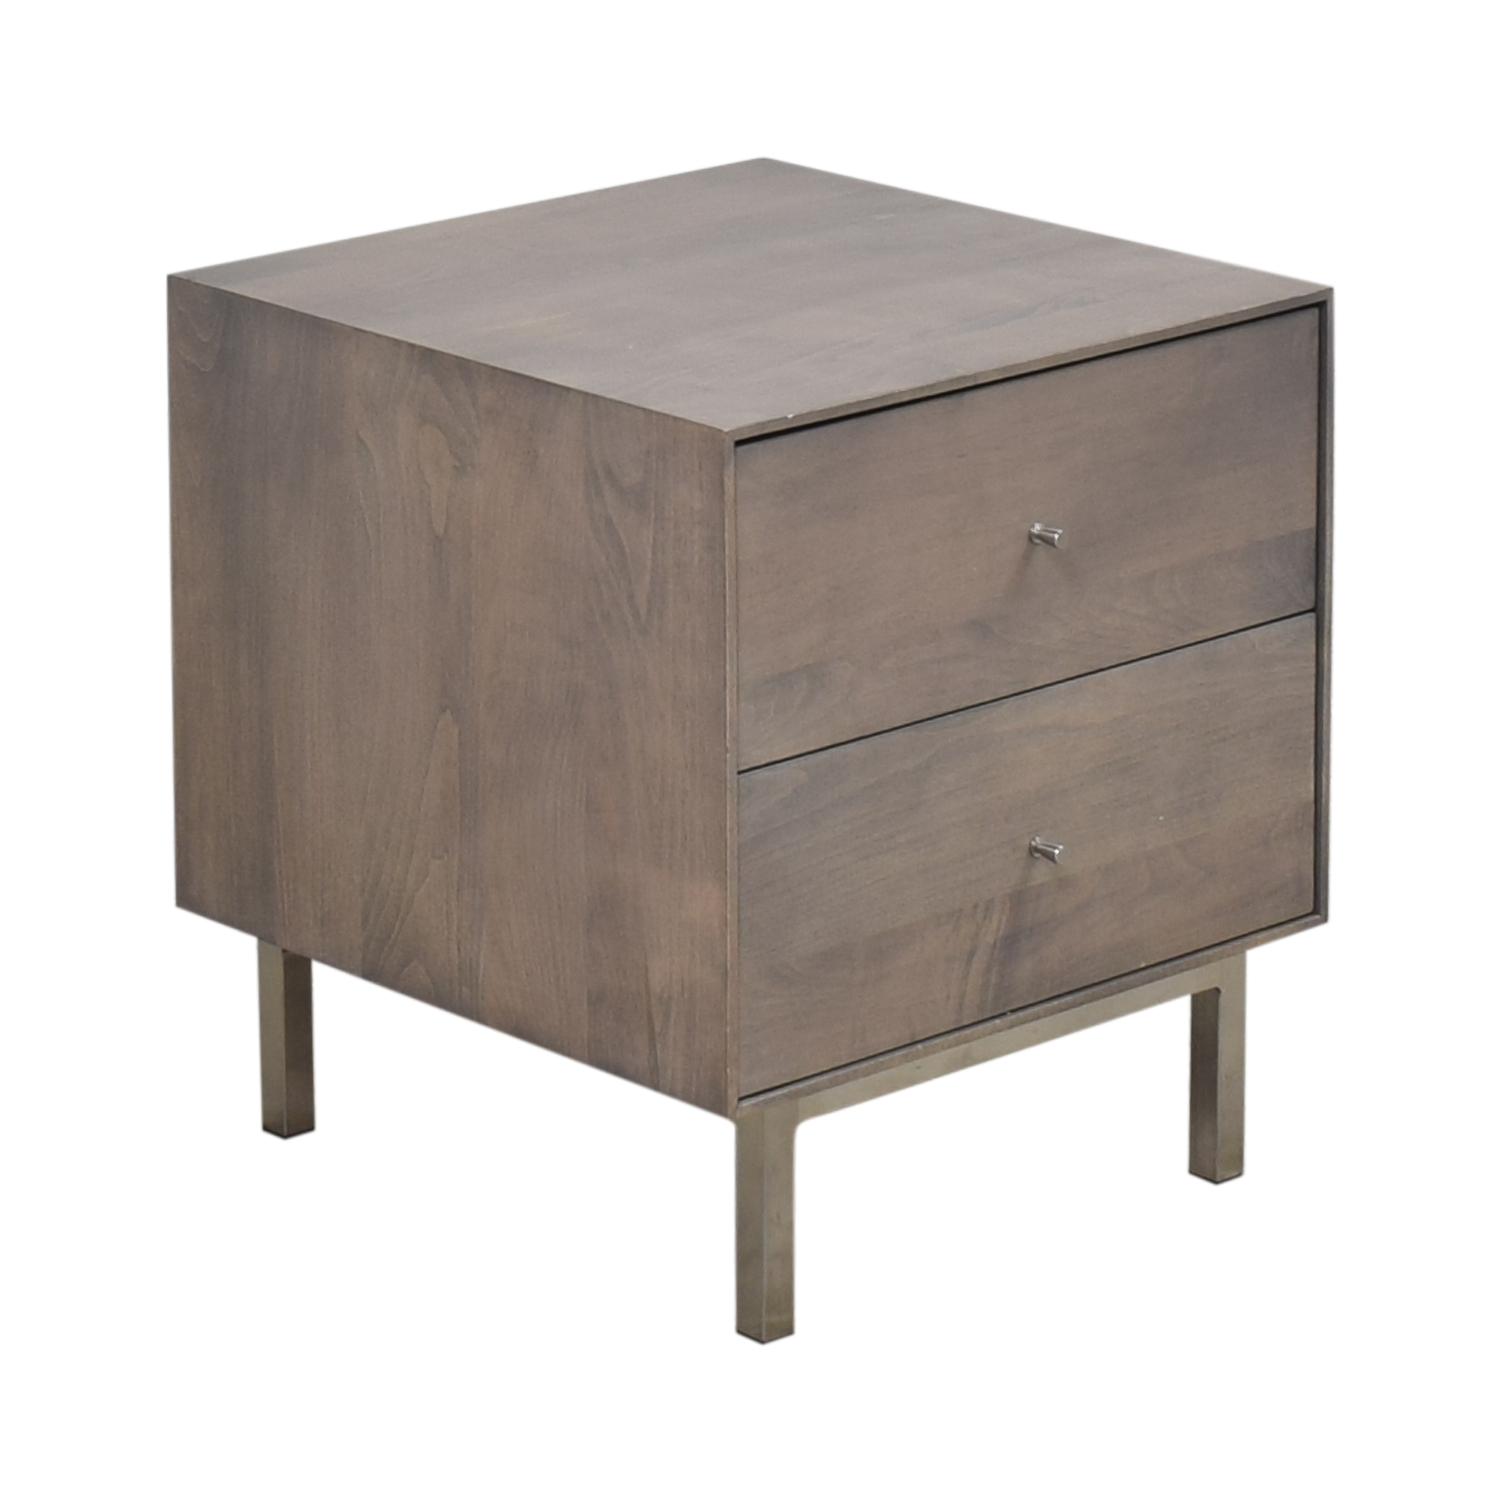 Room & Board Hudson Two Drawer Nightstand / End Tables